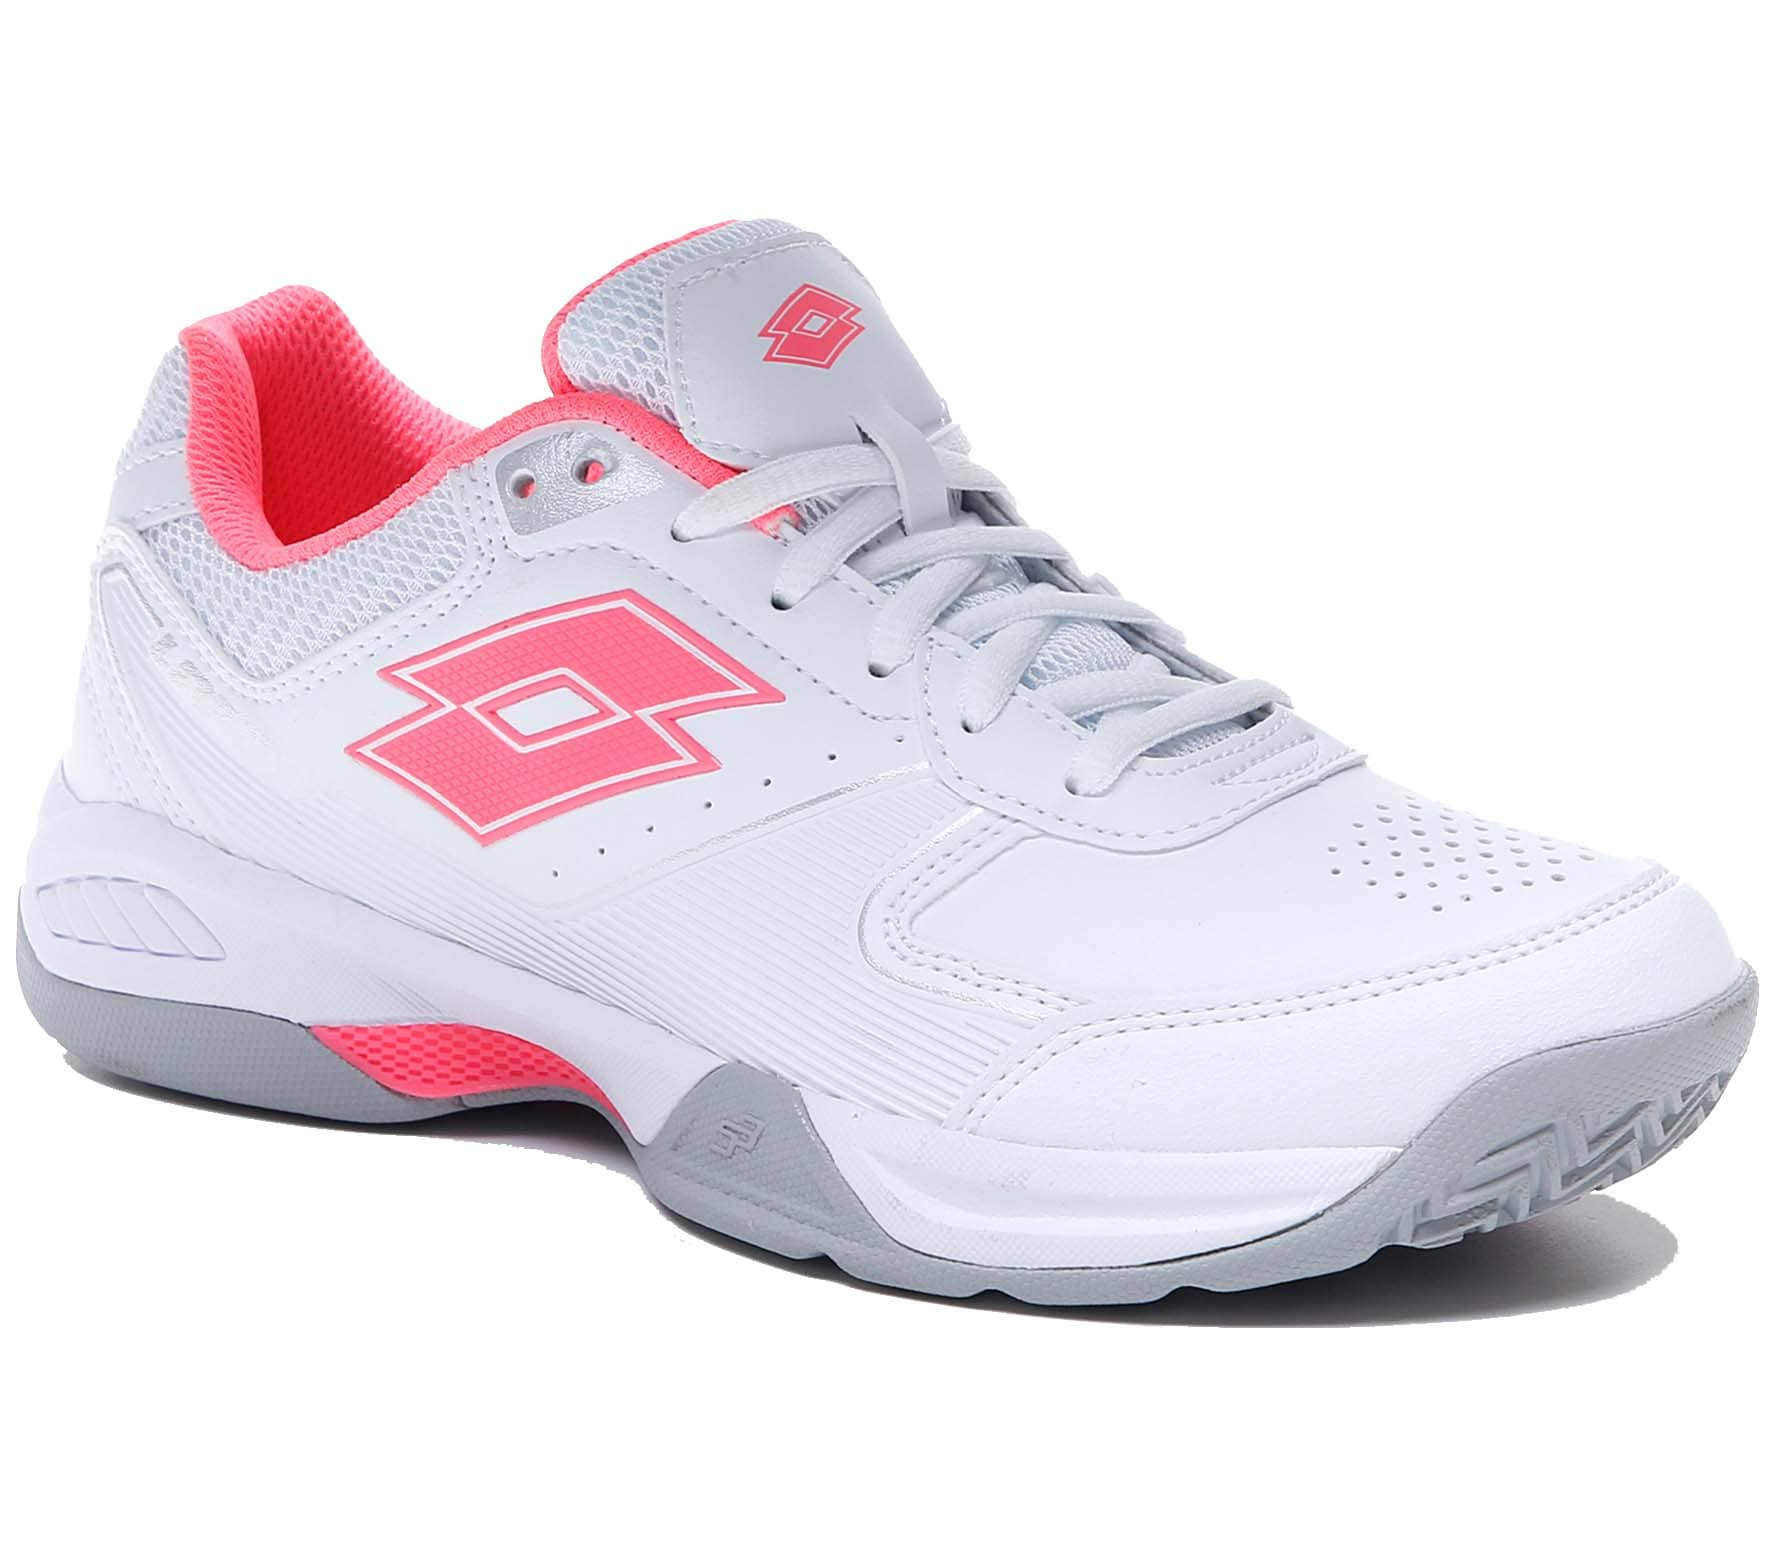 Space 600 All Round Women Tennis Shoes